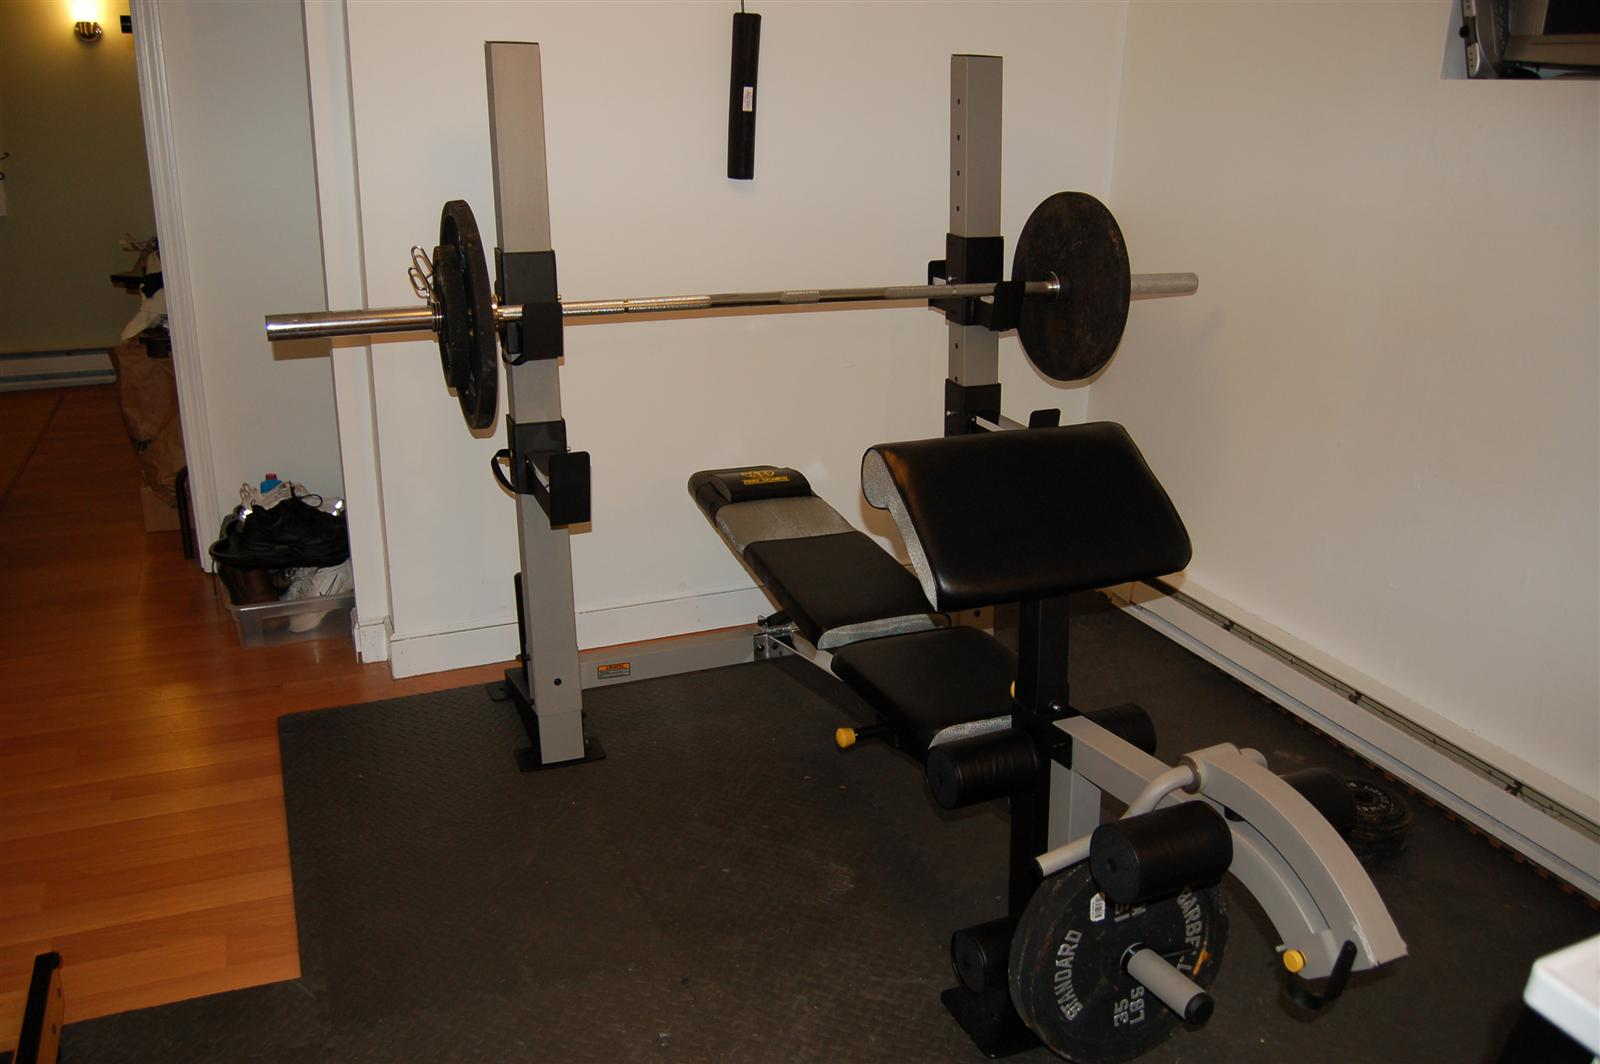 I Already Brought My Rowing Machine To The Apartment So Have Almost Everything Need Mounted Pull Up Bar In Bedroom Doorway And Using Ab